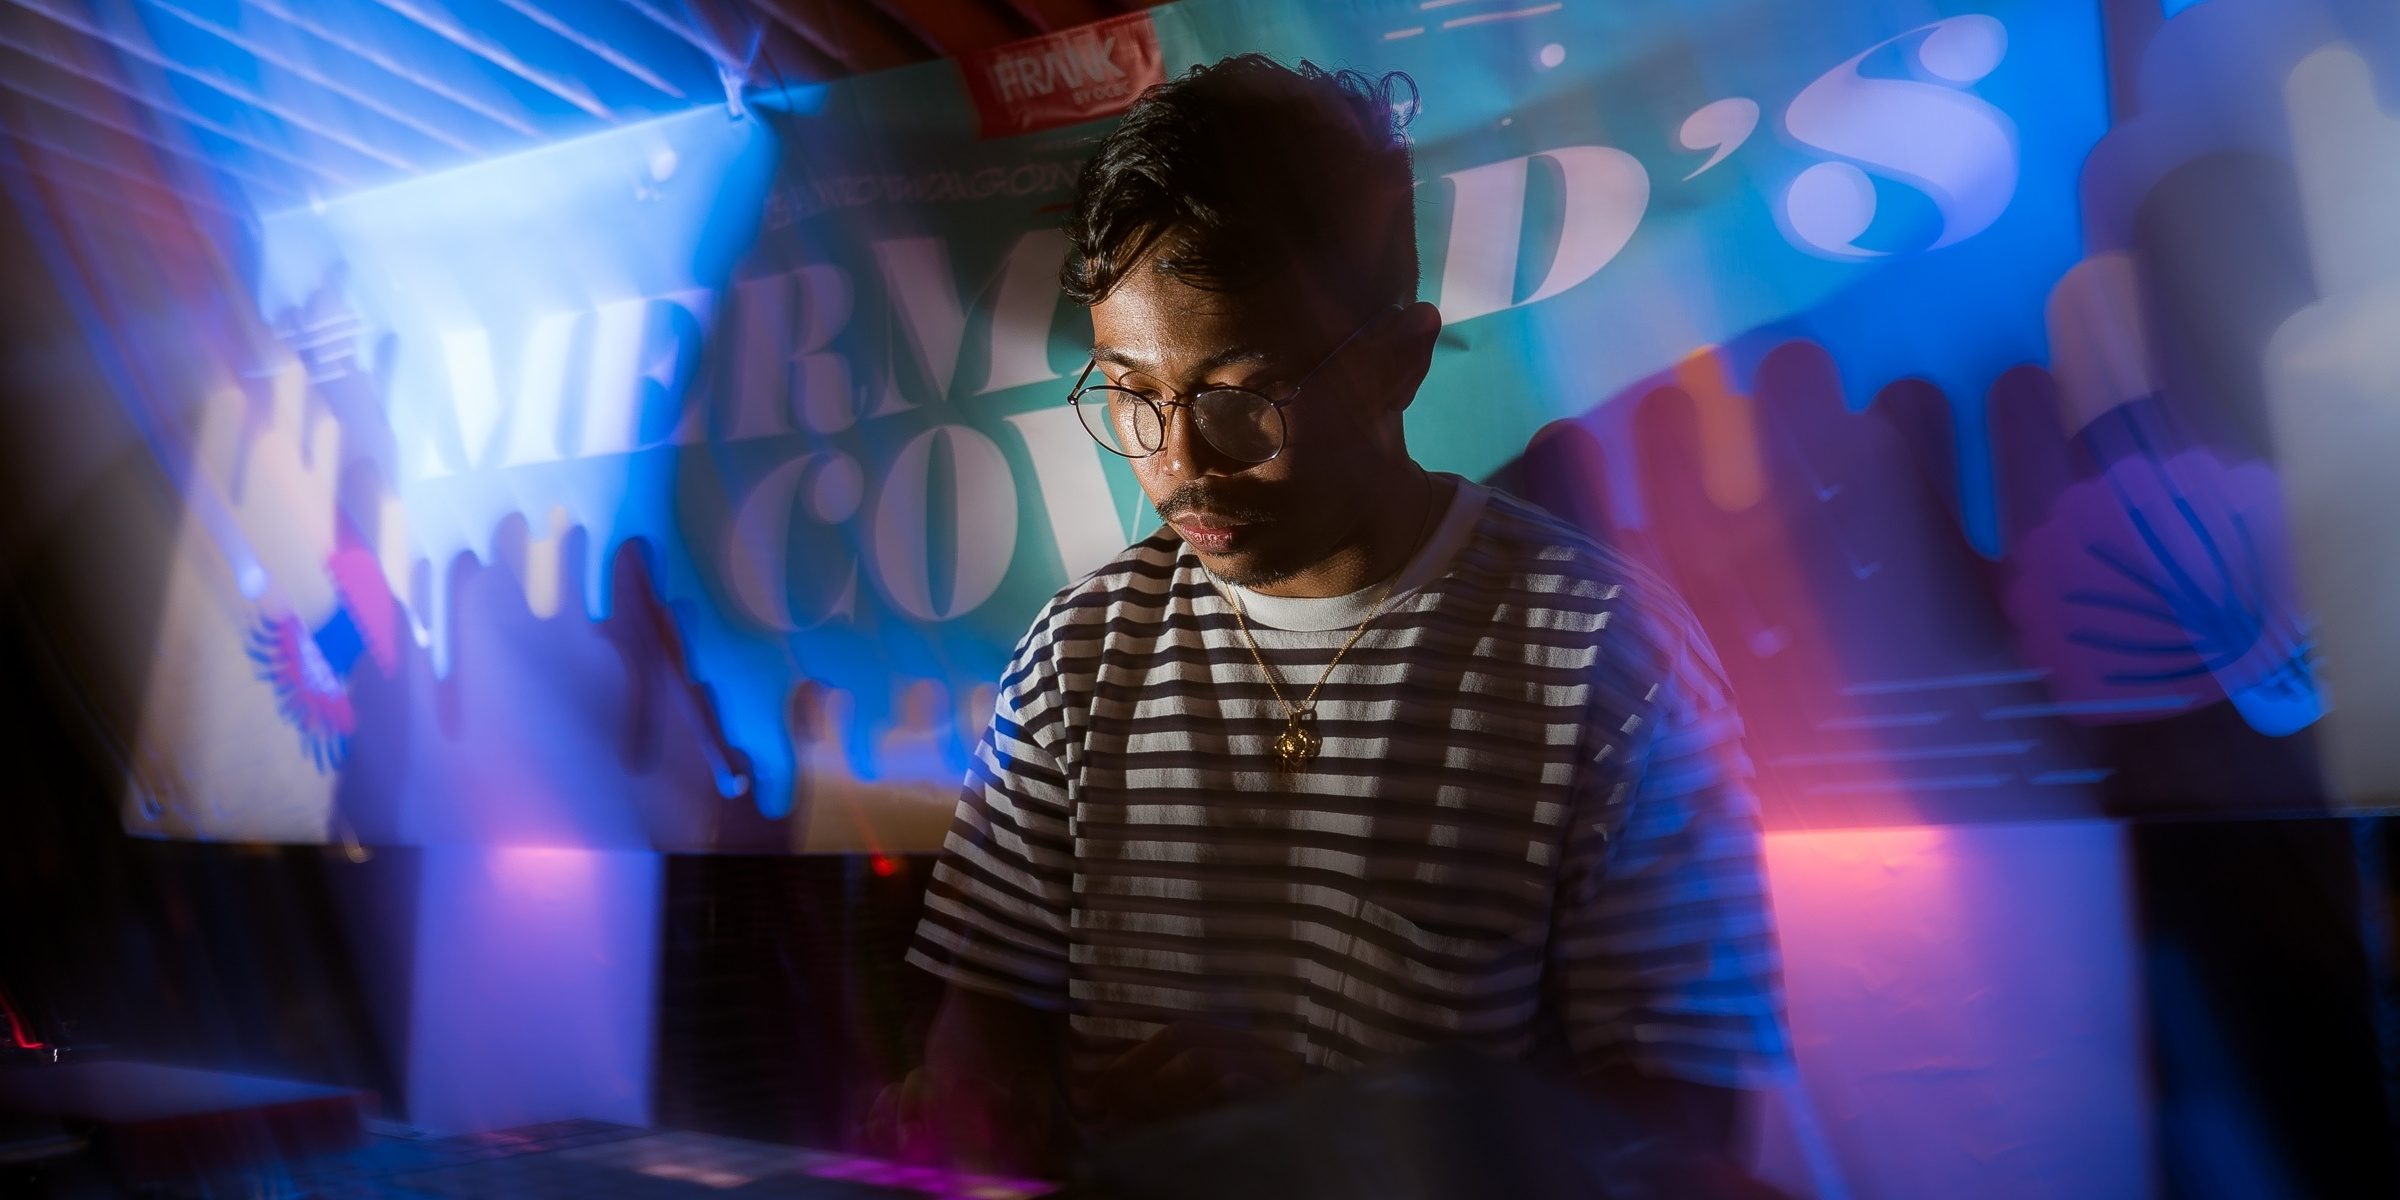 LISTEN: crwn drops new track off upcoming EP, tommy gun